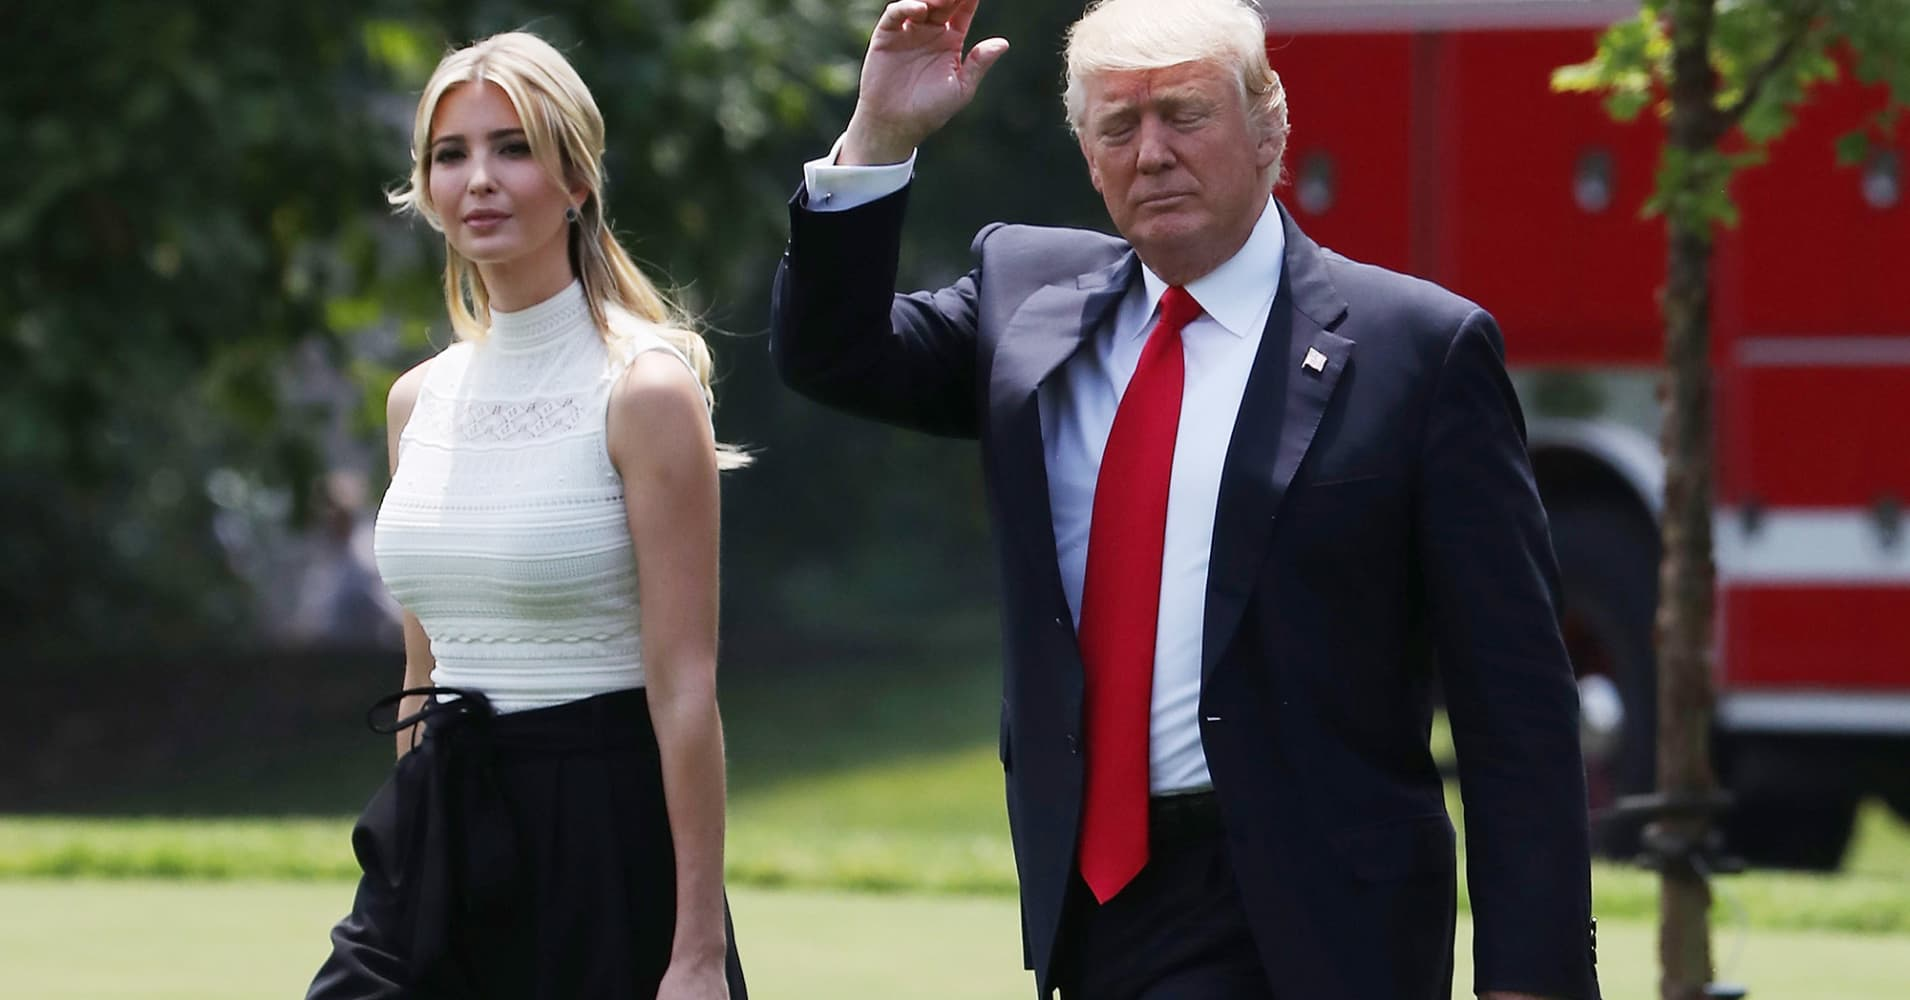 Timing of Ivanka Trump's Chinese trademarks raises red flags